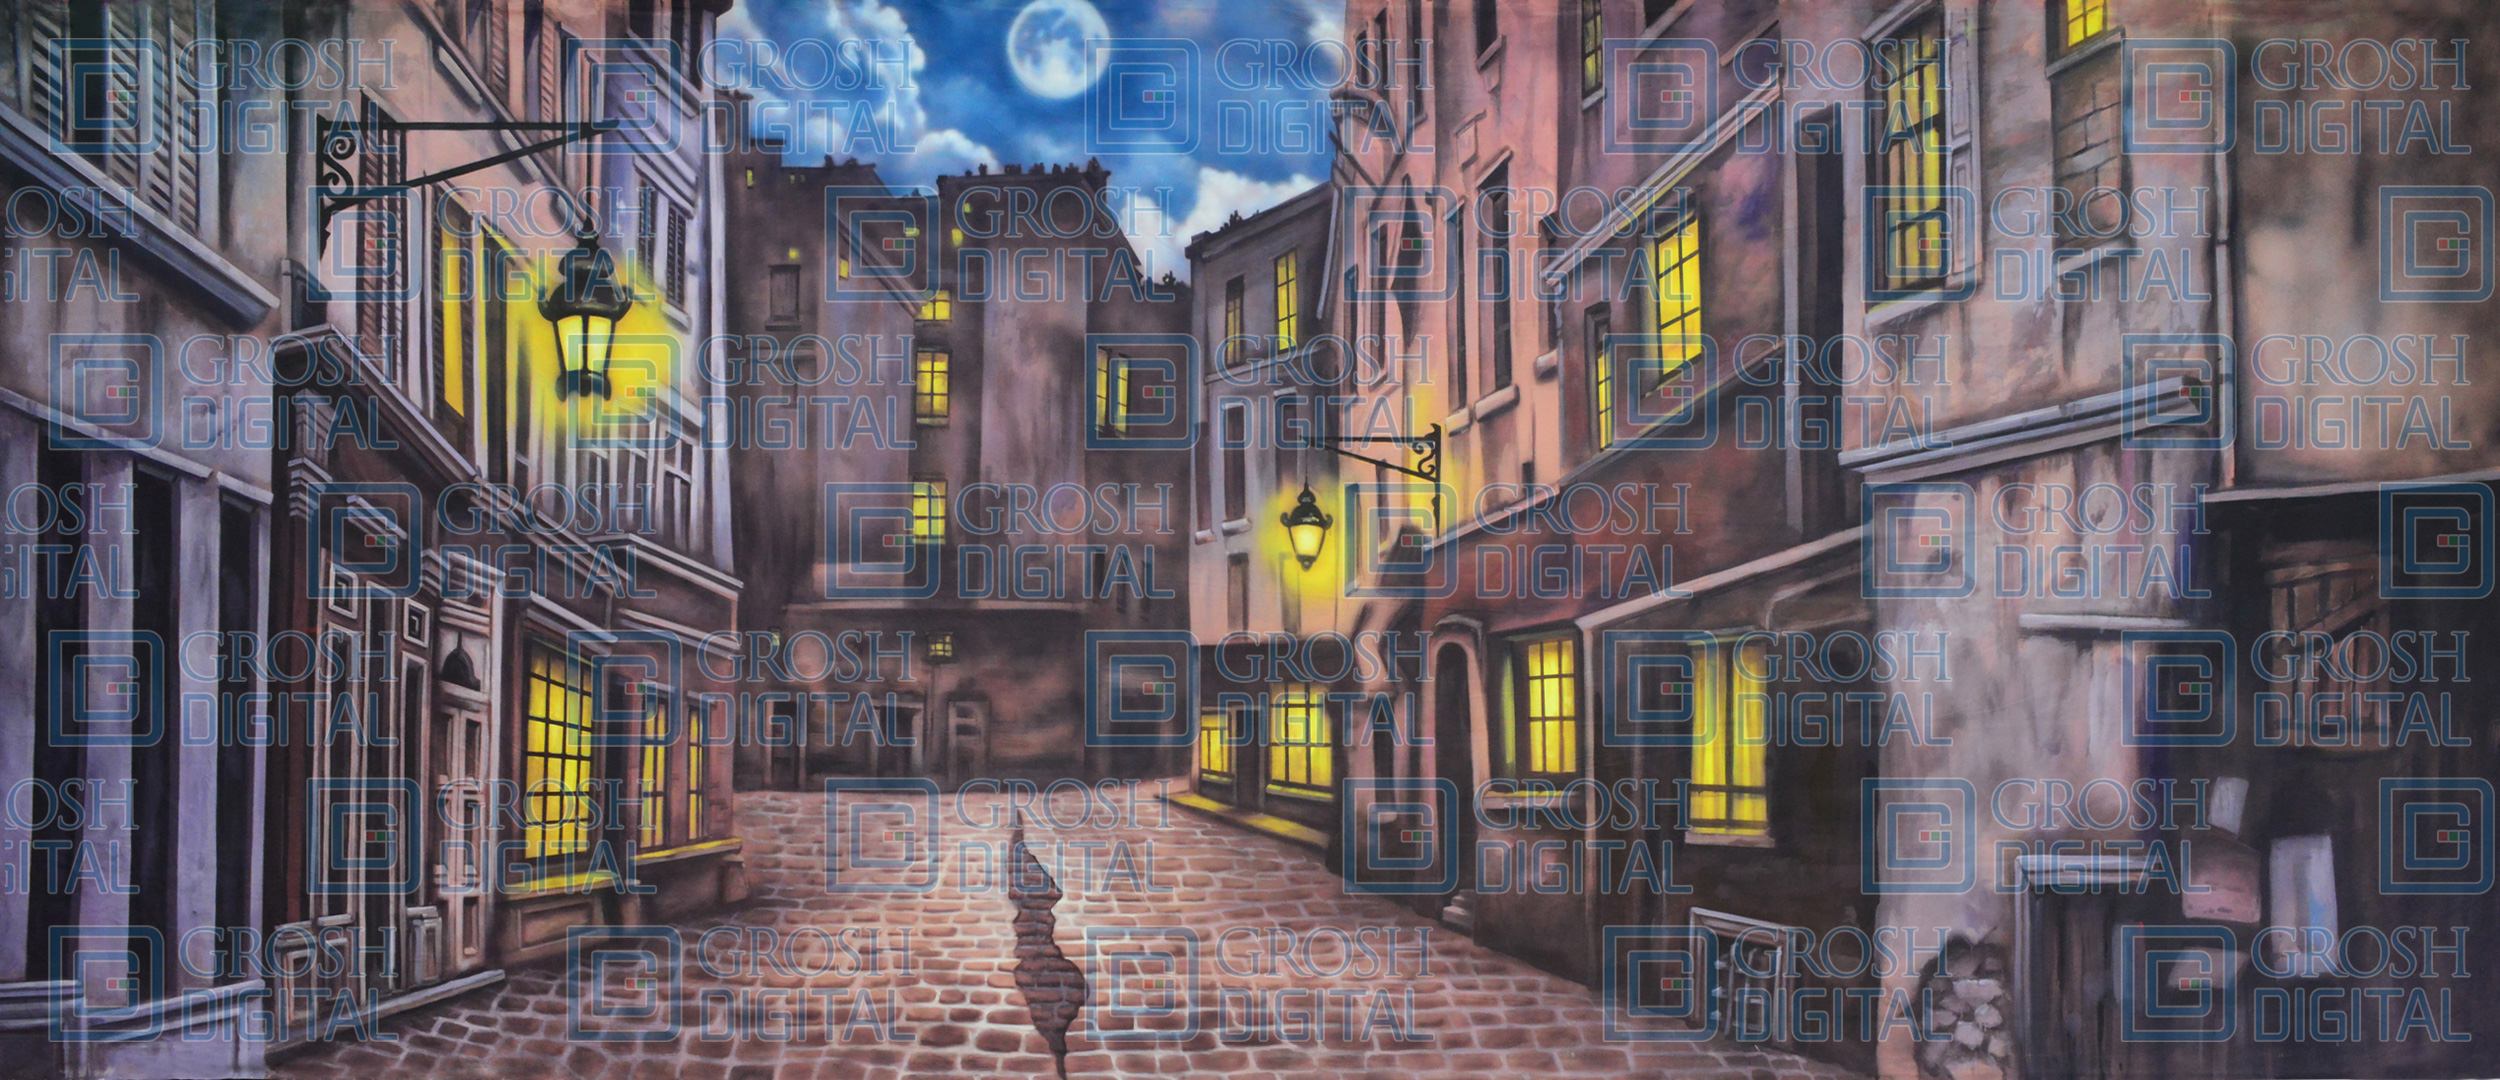 European Street Projected Backdrop for A Christmas Carol, Charlie and the Chocolate Factory, Mary Poppins, Streets